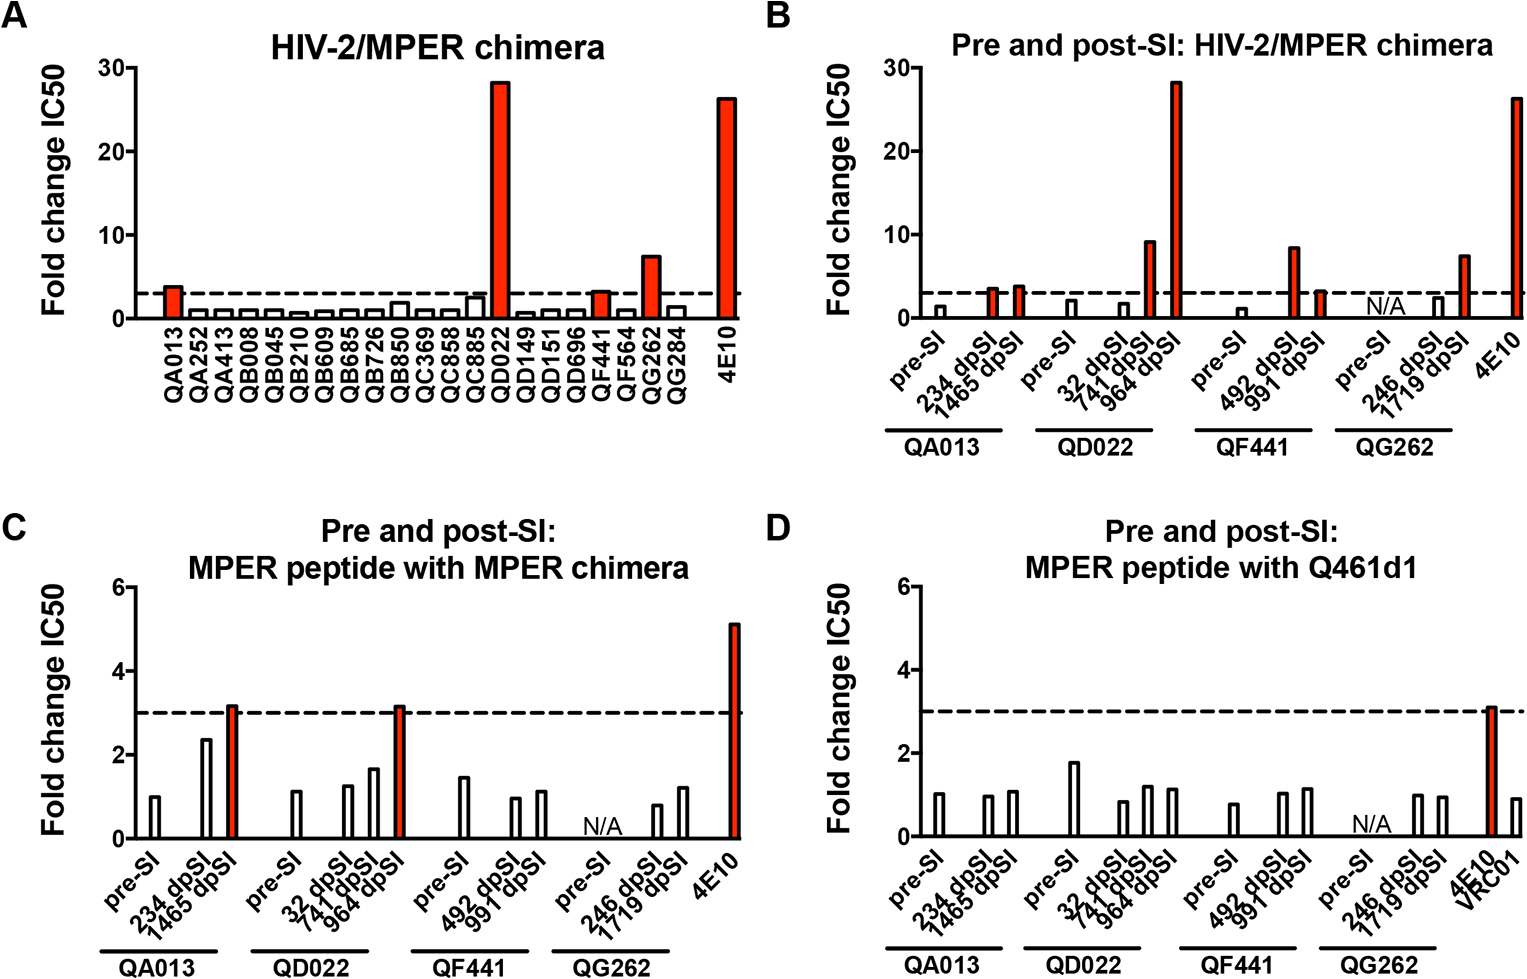 Neutralization of HIV-2 and an HIV-2/HIV-1 MPER chimera and competition with MPER peptides indicate MPER reactivity in plasma.